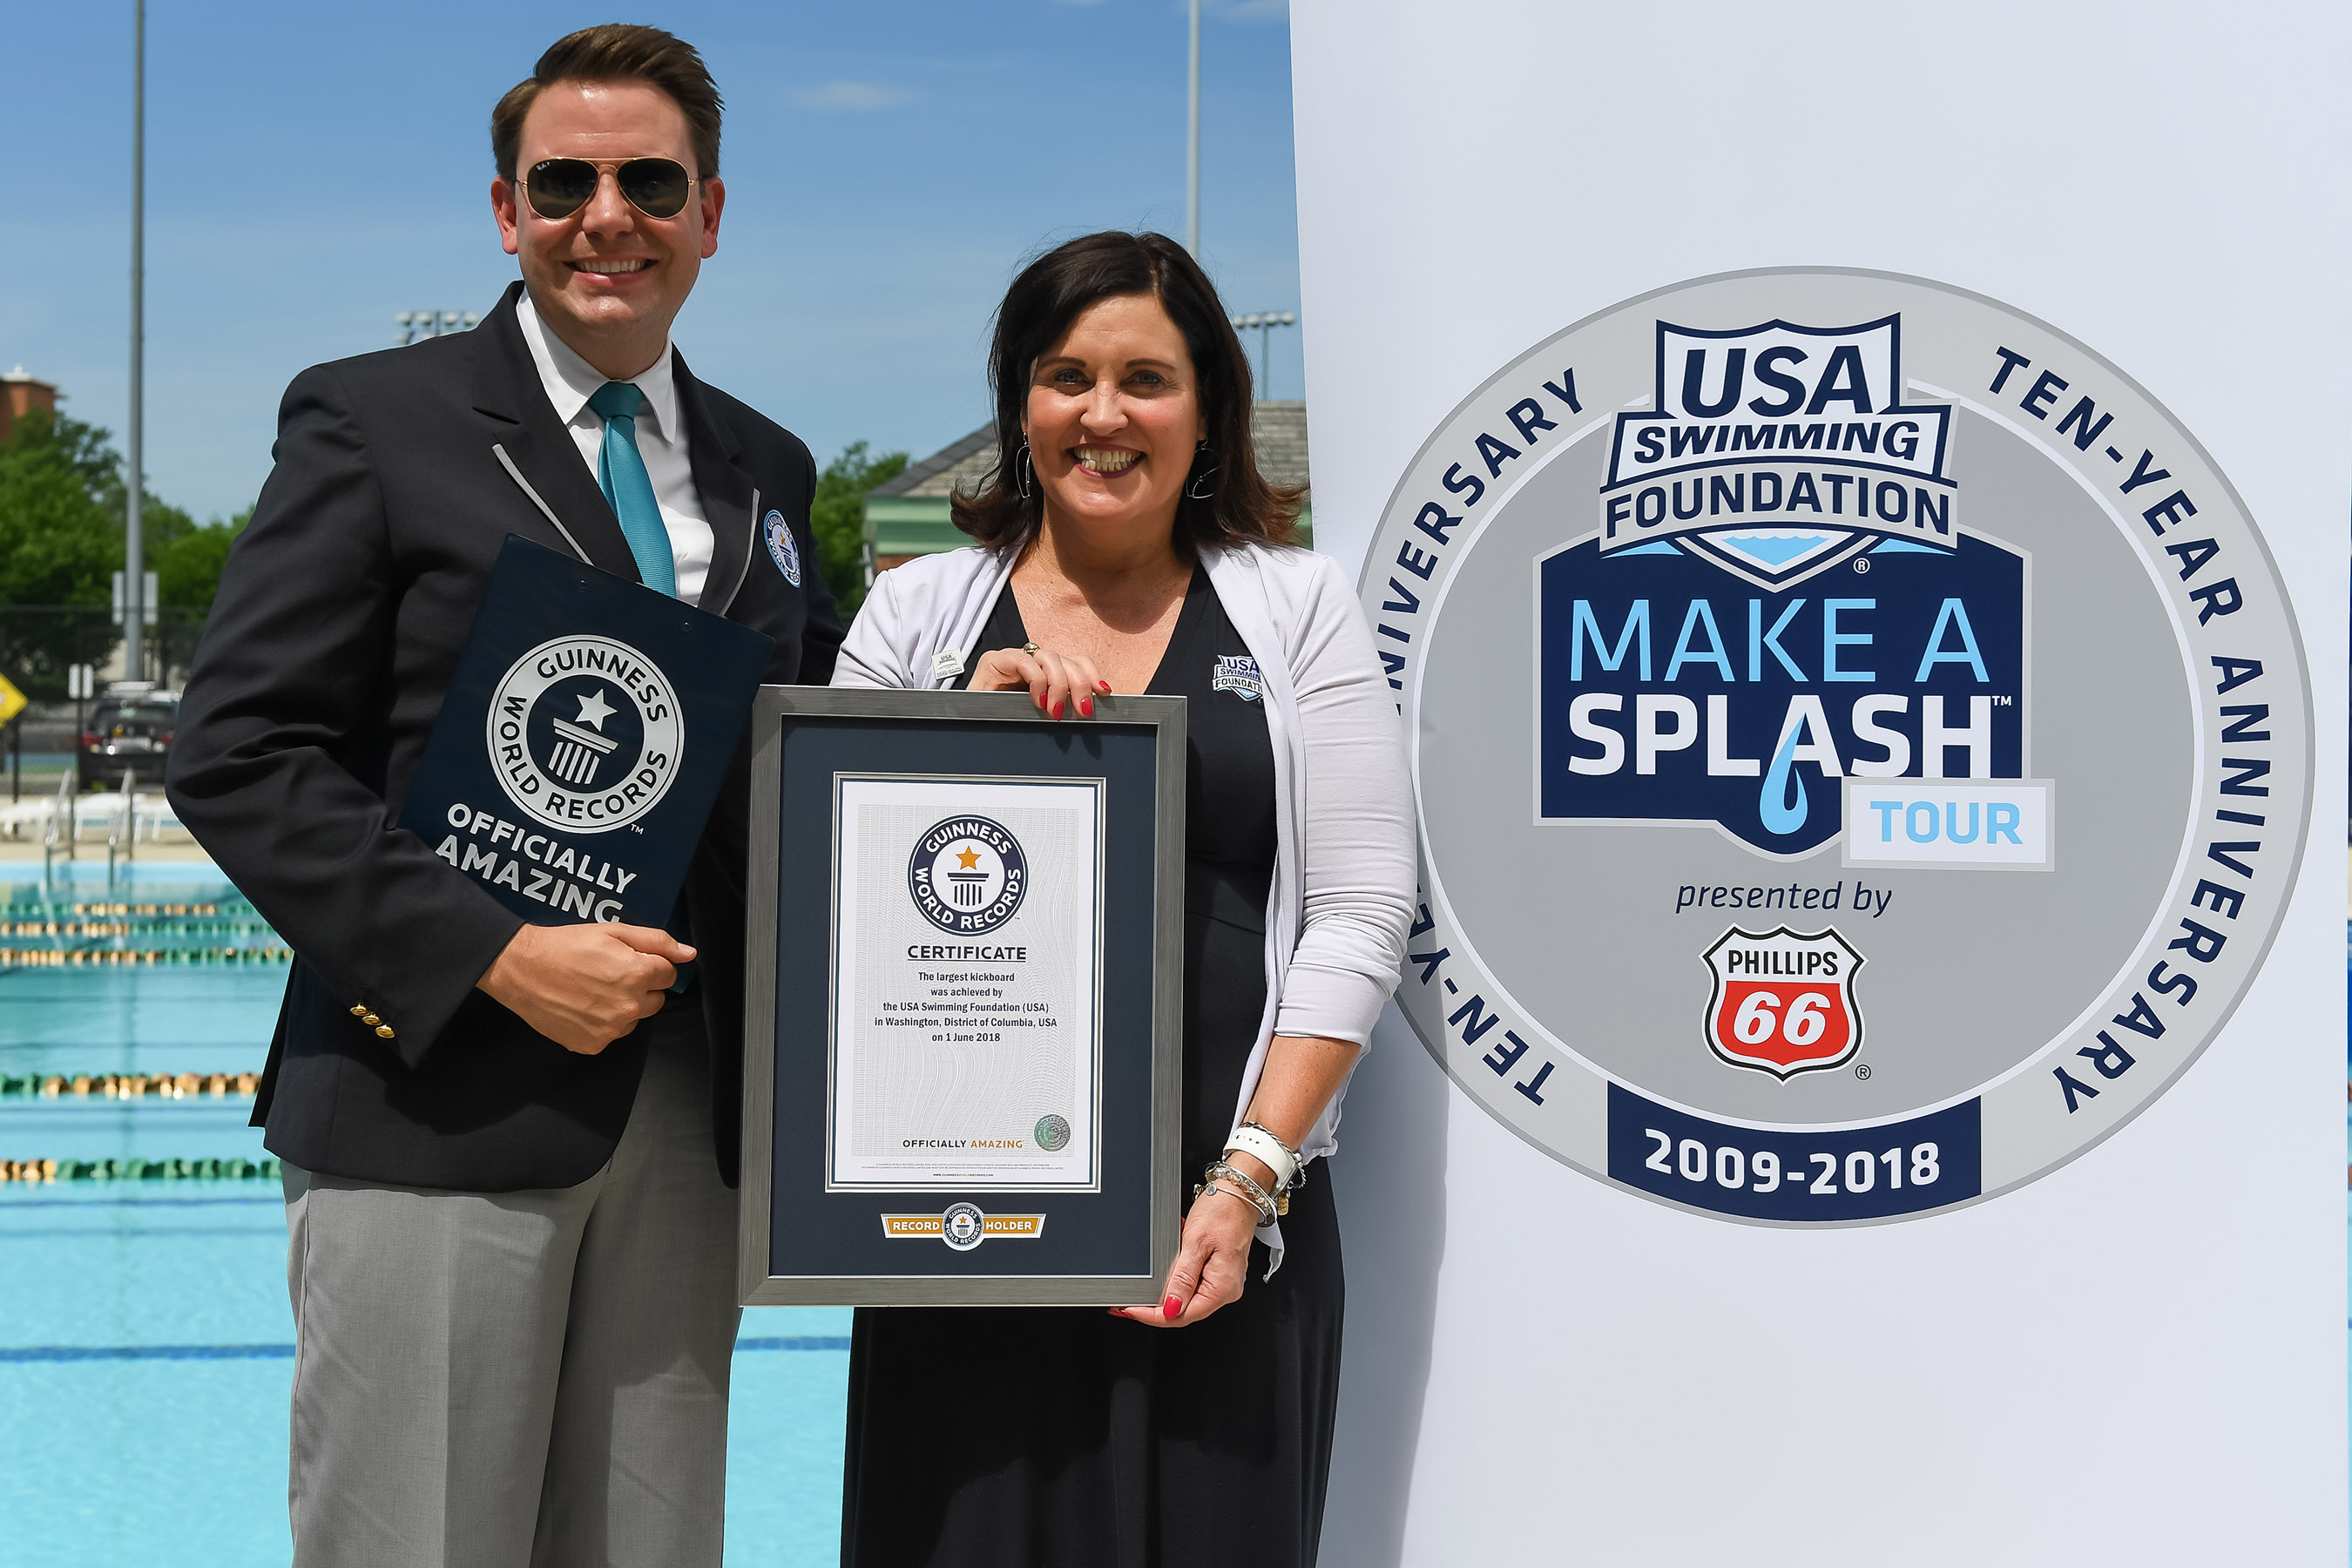 PHOTO CREDIT: © Mike Lewis / USA Swimming Foundation - USA Swimming Foundation Executive Director Debbie Hesse receives the official GUINNESS WORLD RECORDS© recognition from GWR adjudicator Michael Empric.